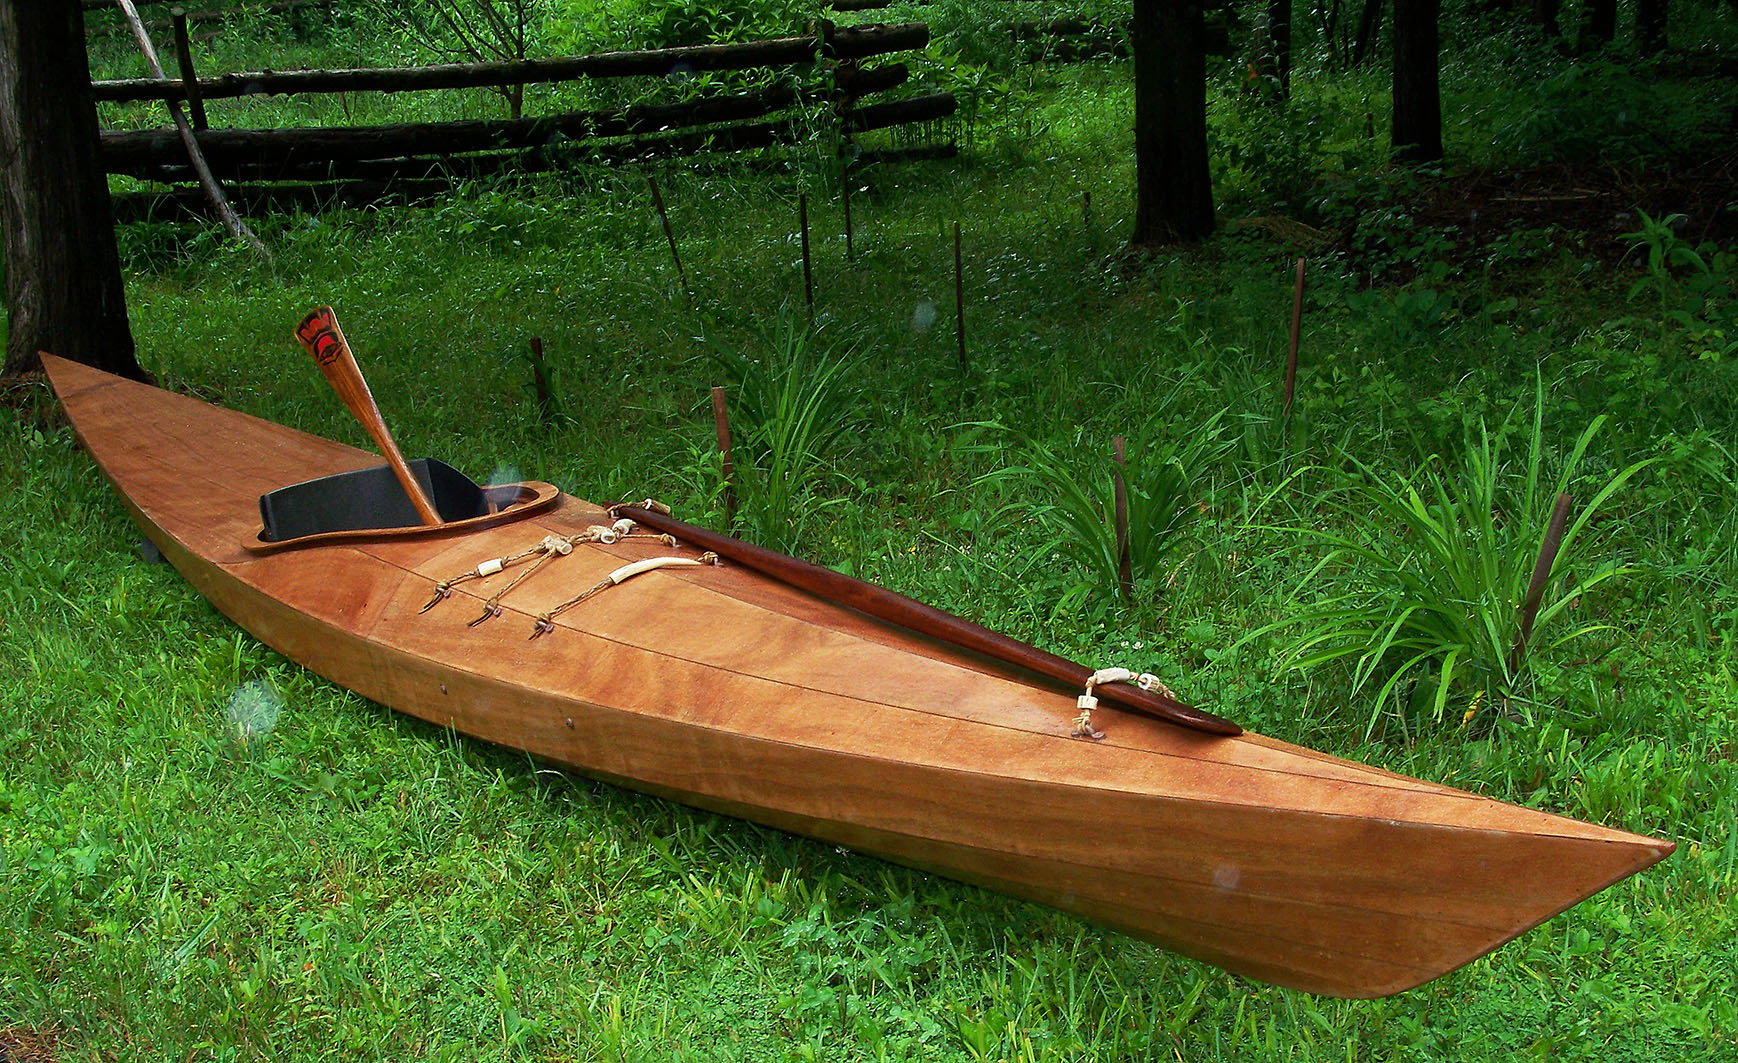 Customizing Your Boat Wood Inlays Onlays Paintings Other Fun